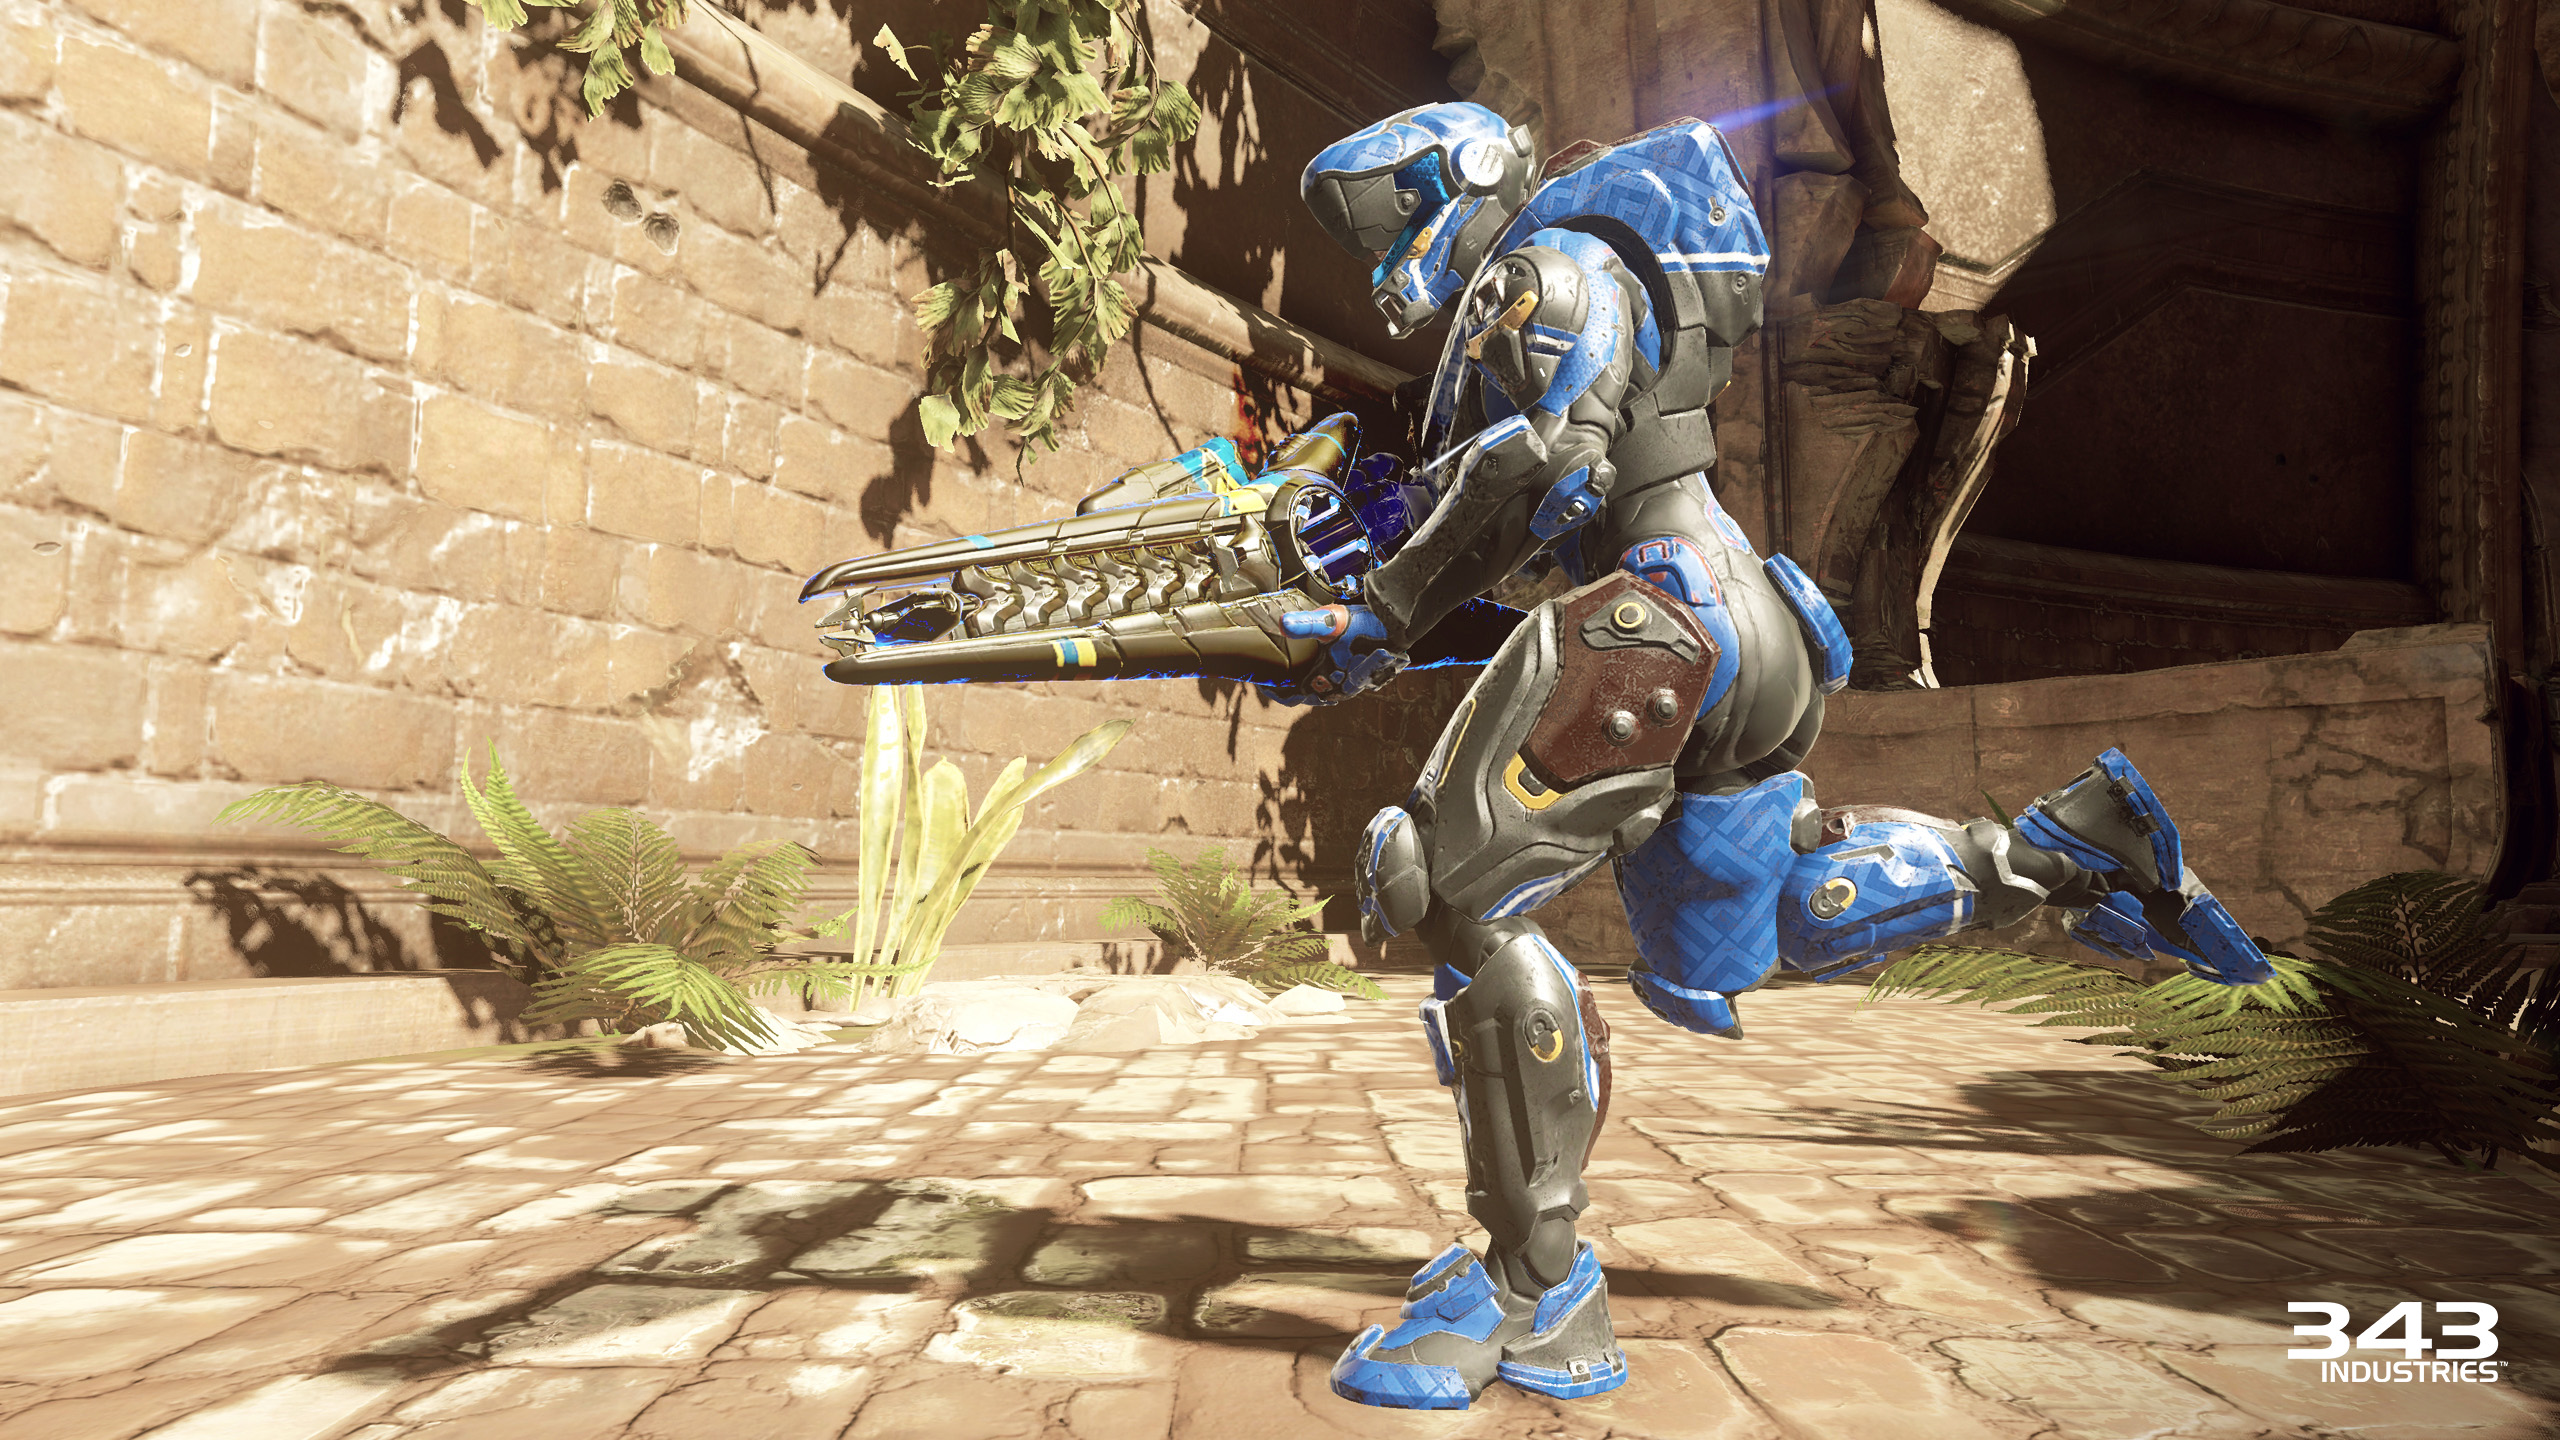 Assault Preview Playlist Live in Halo 5: Guardians for Five Maps